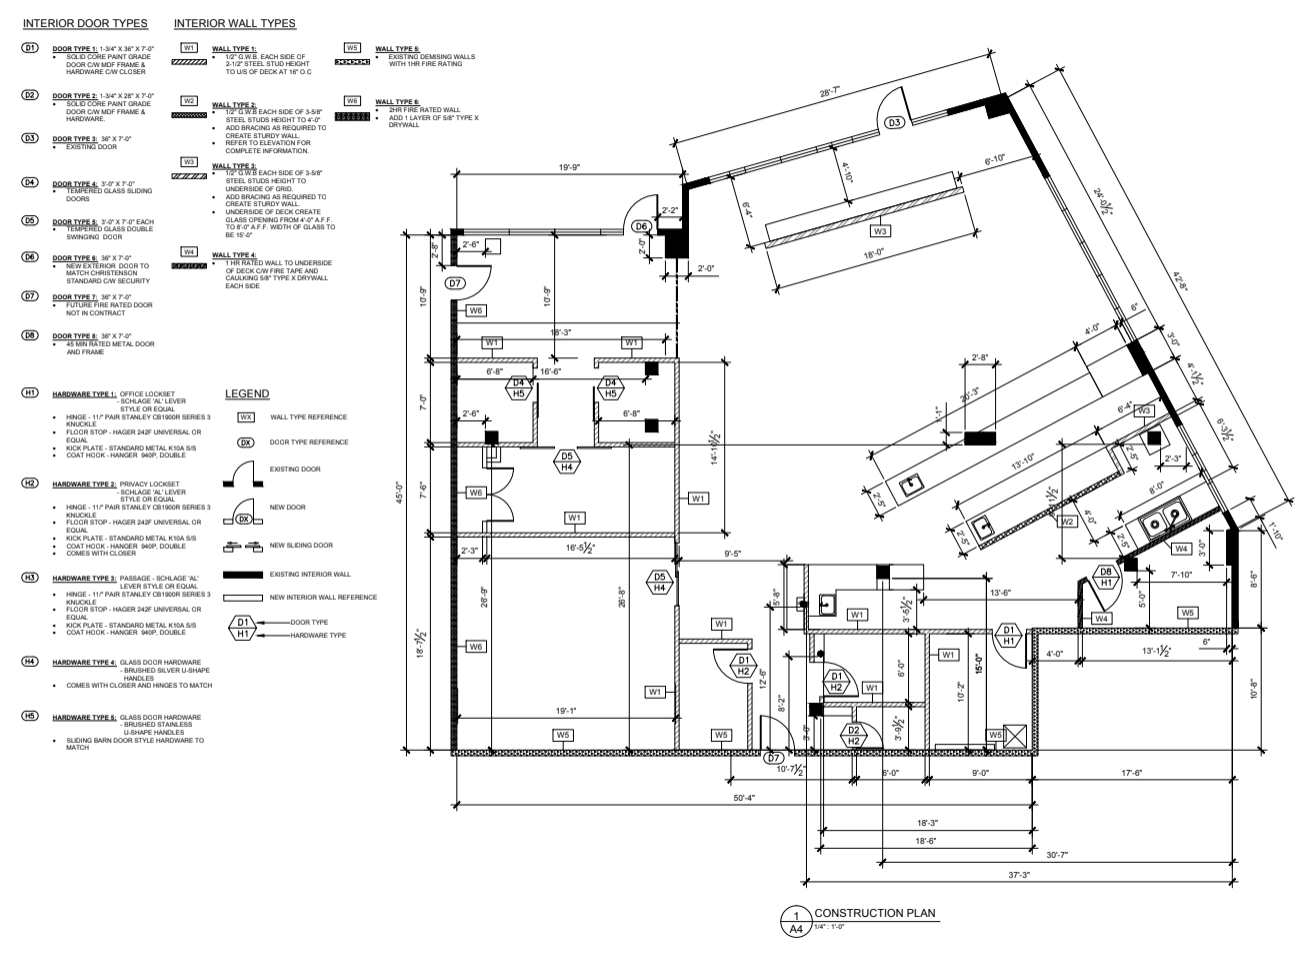 Sample layout drawing